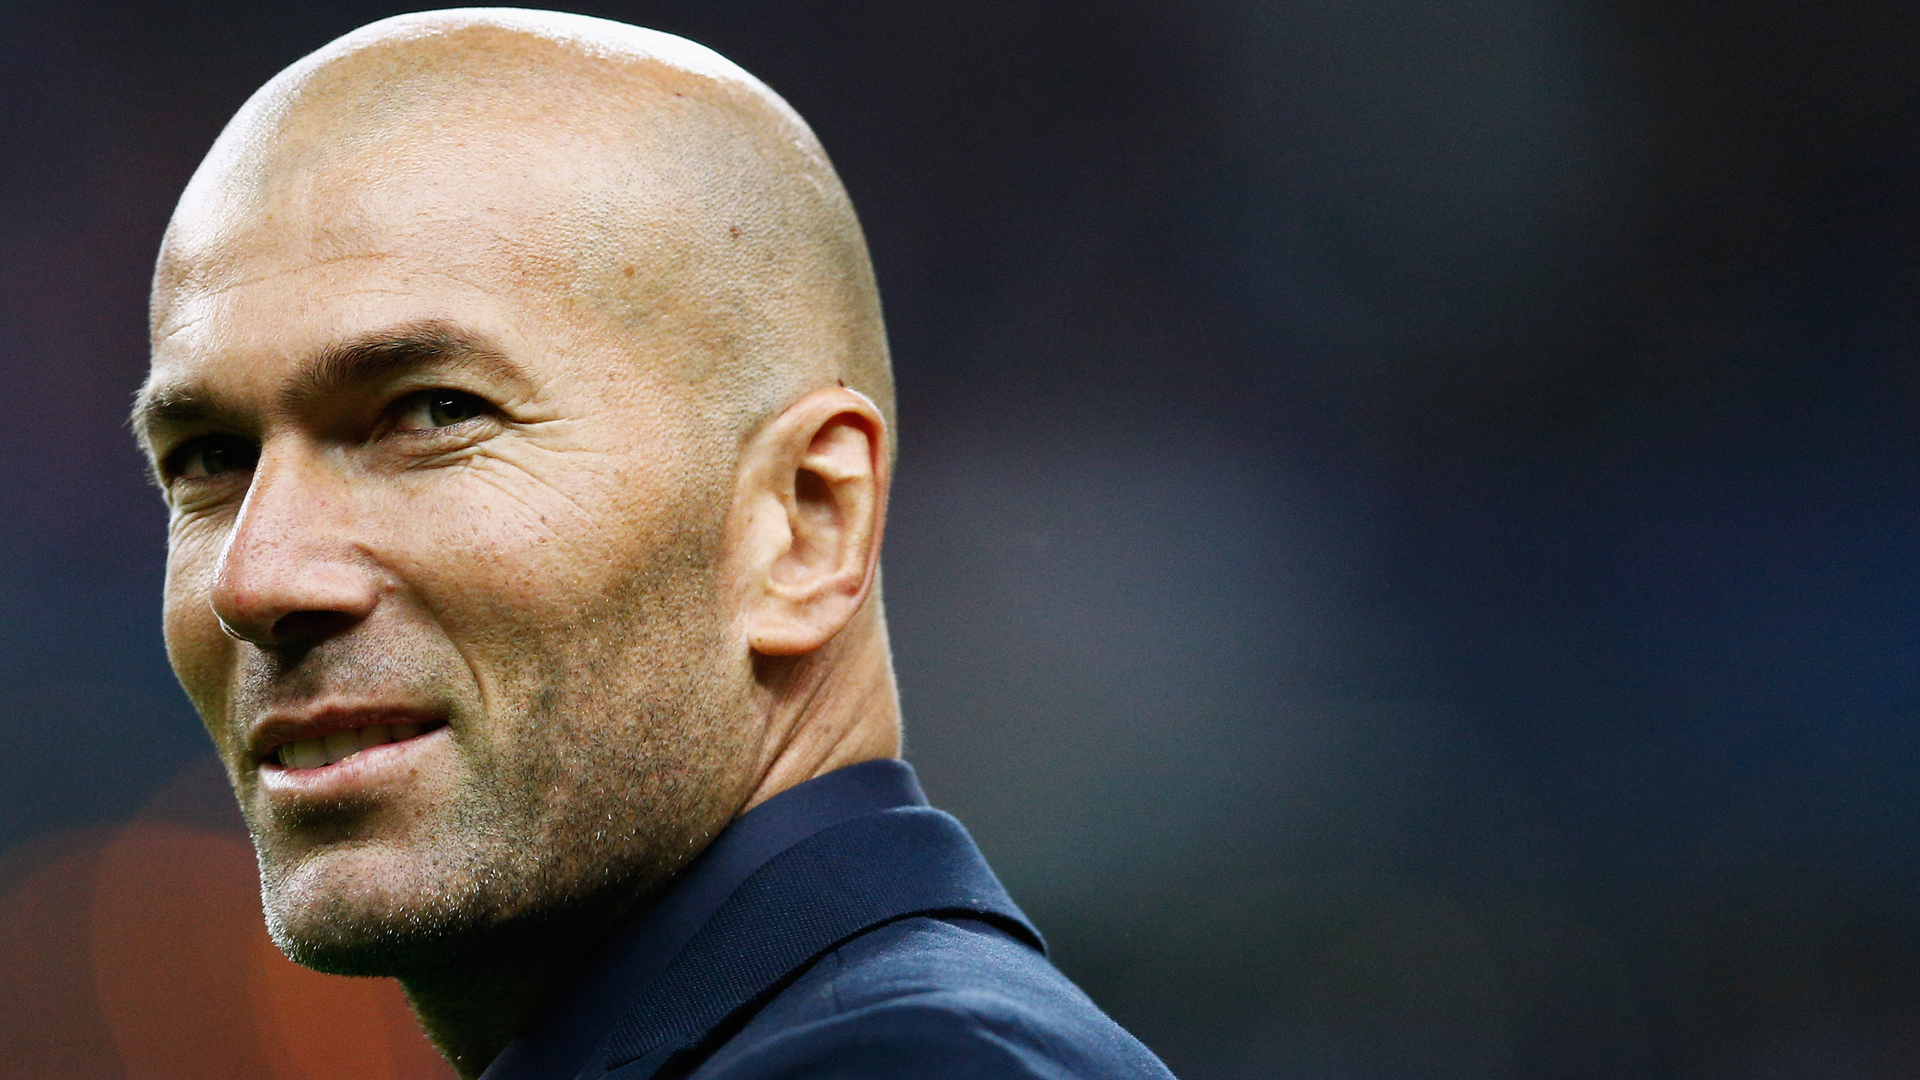 Could Zinedine Zidane Be Facing the Sack